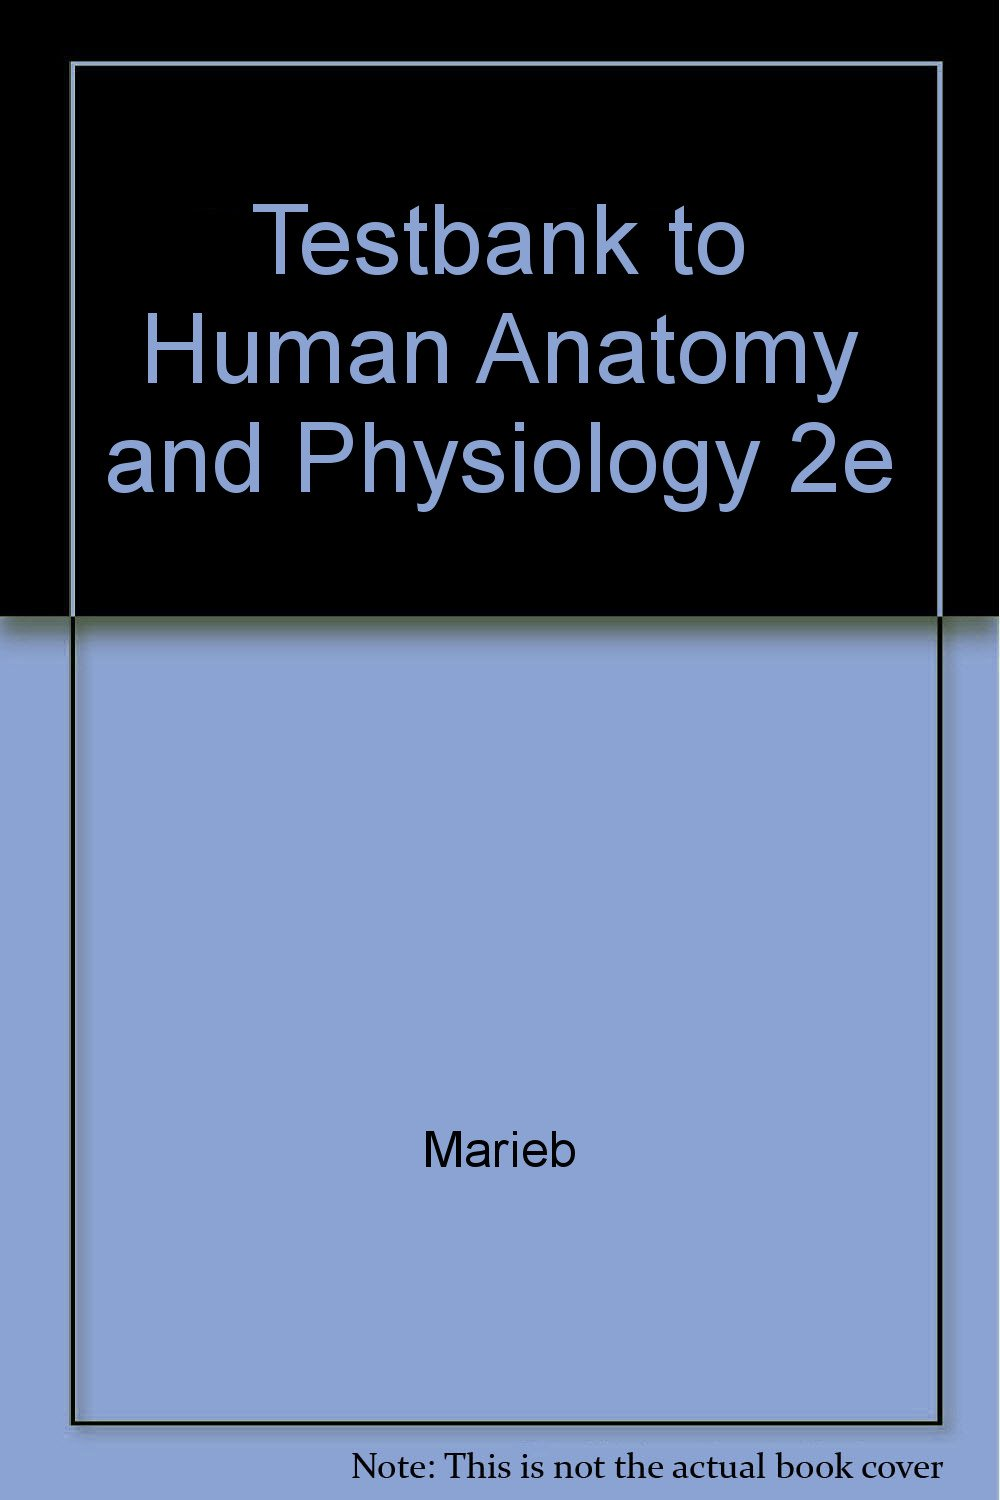 Buy Testbank To Human Anatomy And Physiology 2e Book Online At Low